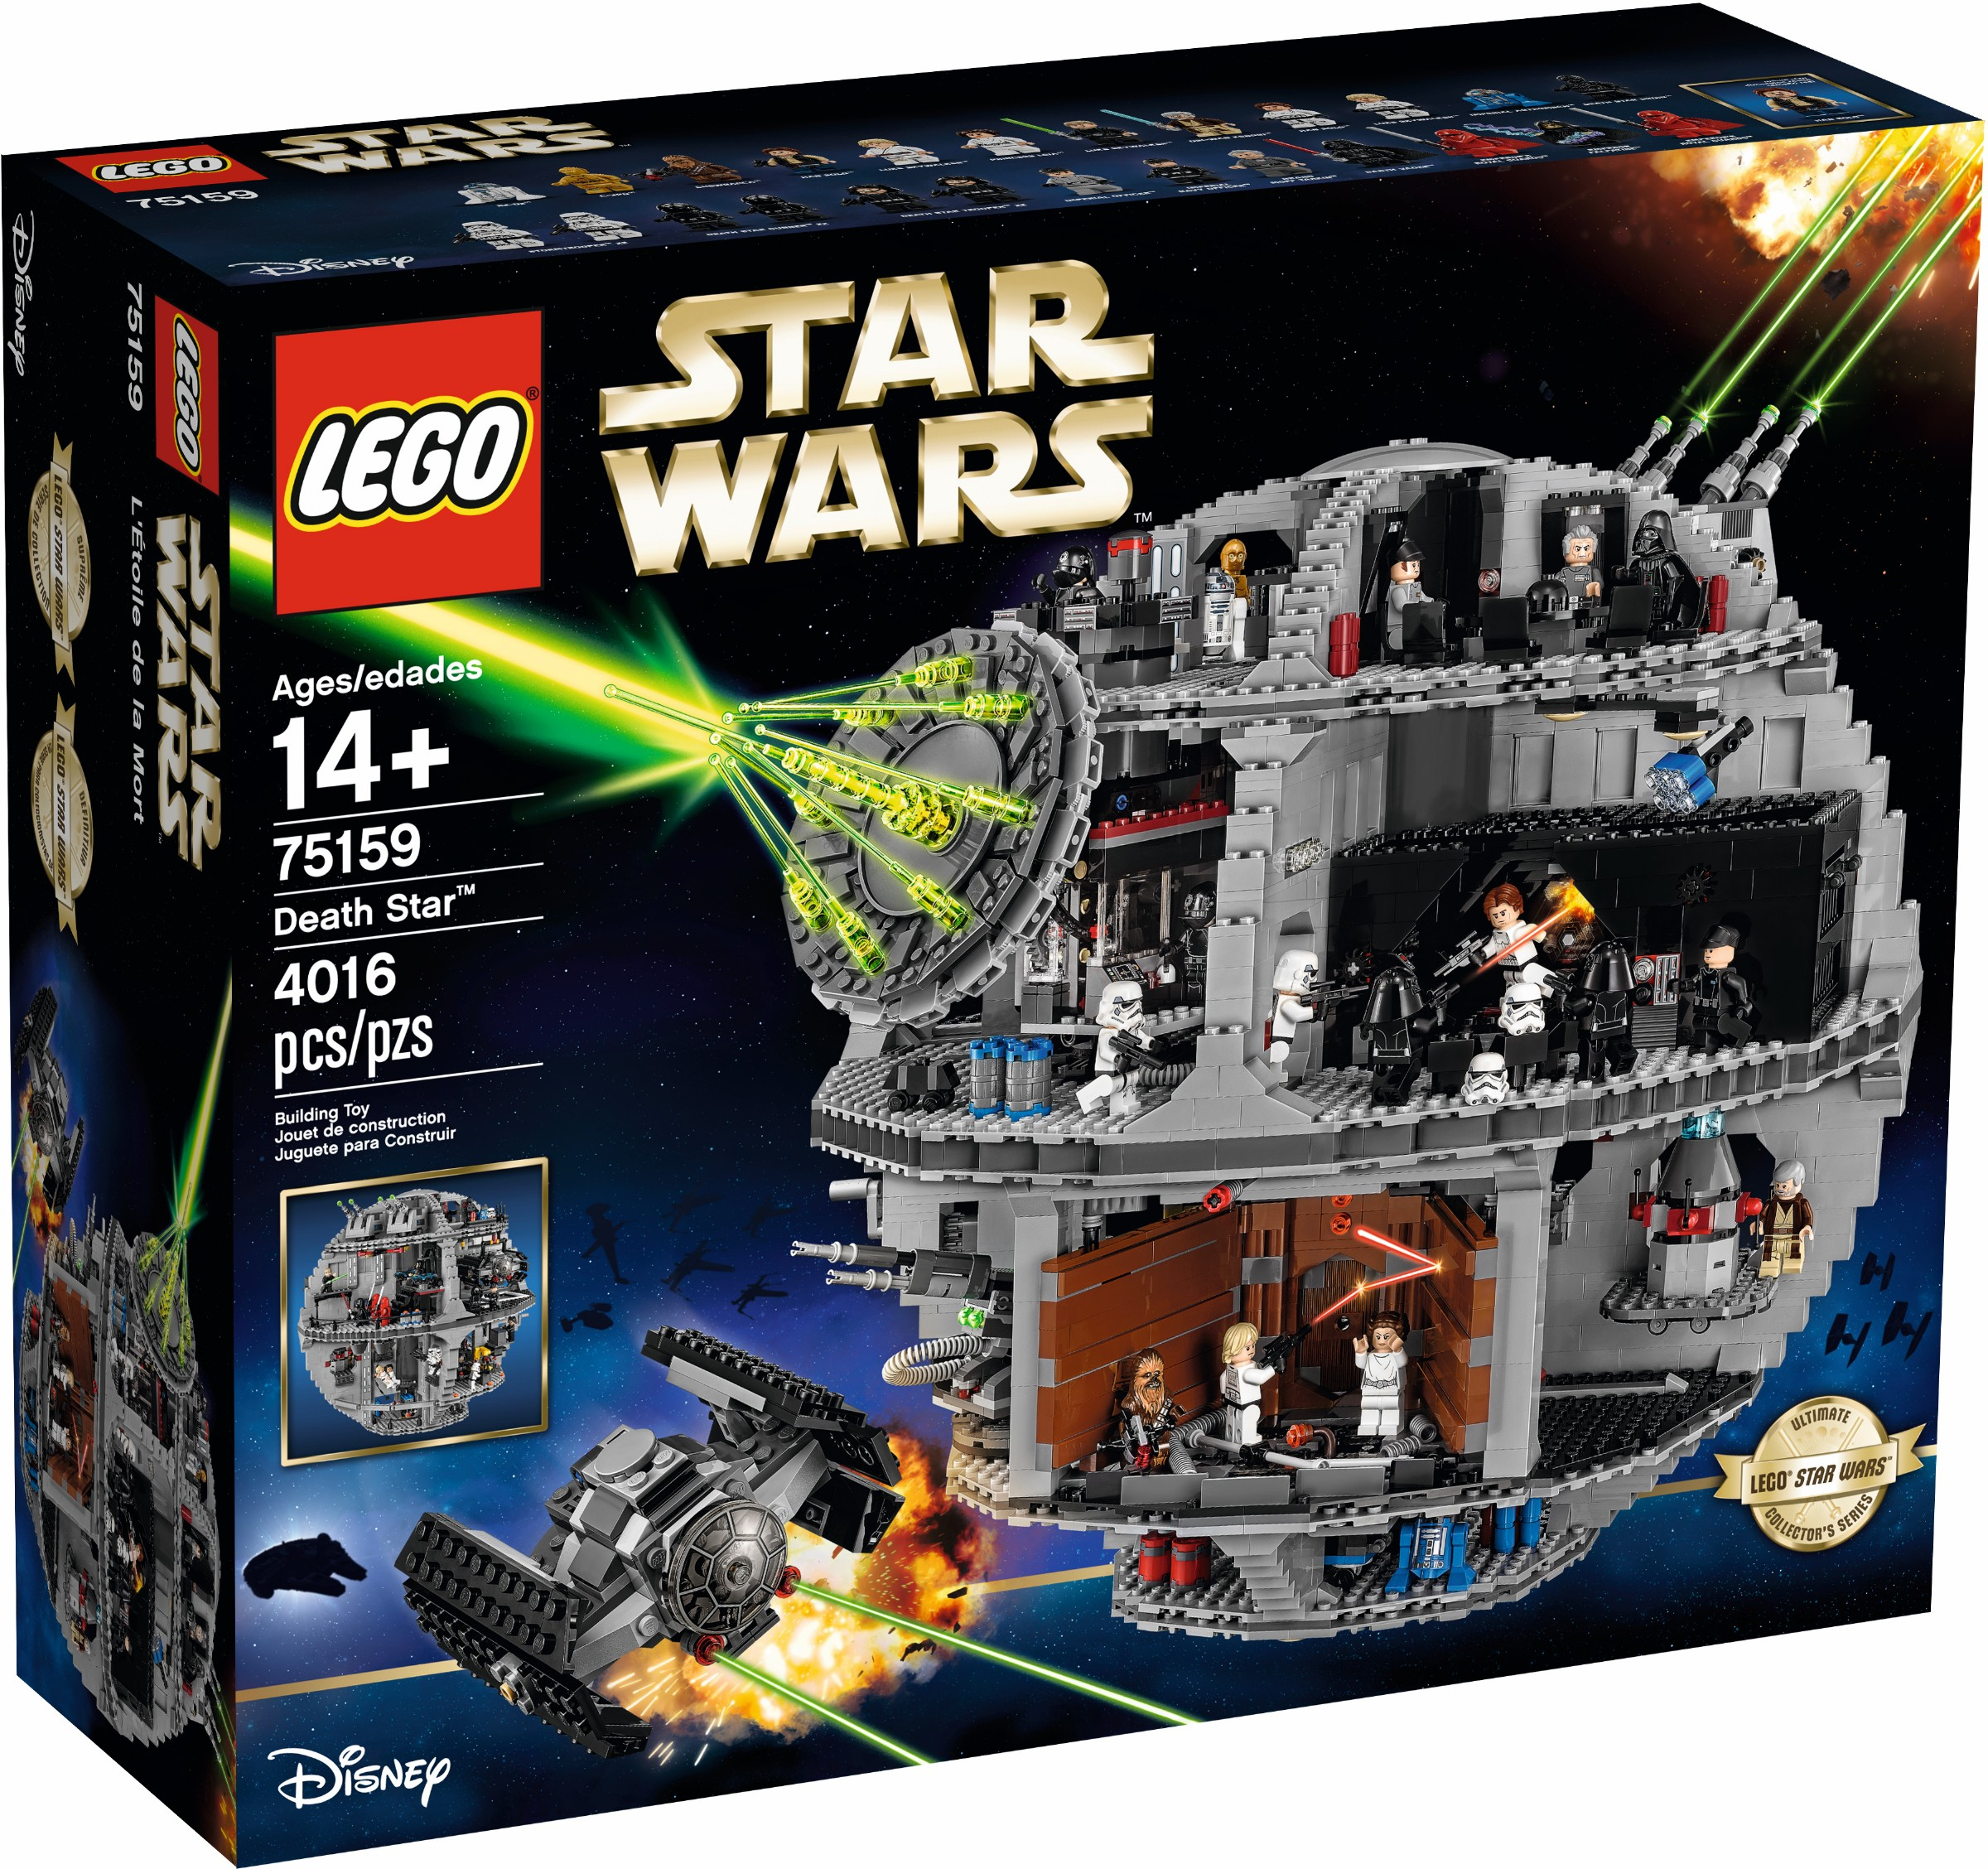 Lego Star Wars 75159 Death Review Brickset Set Guide Defy Stove Wiring Diagram Three White Boxes And Some Loose Numbered Bags Are Found Inside The Instruction Manual Is Packed In One Of These Wire Bound Just Like